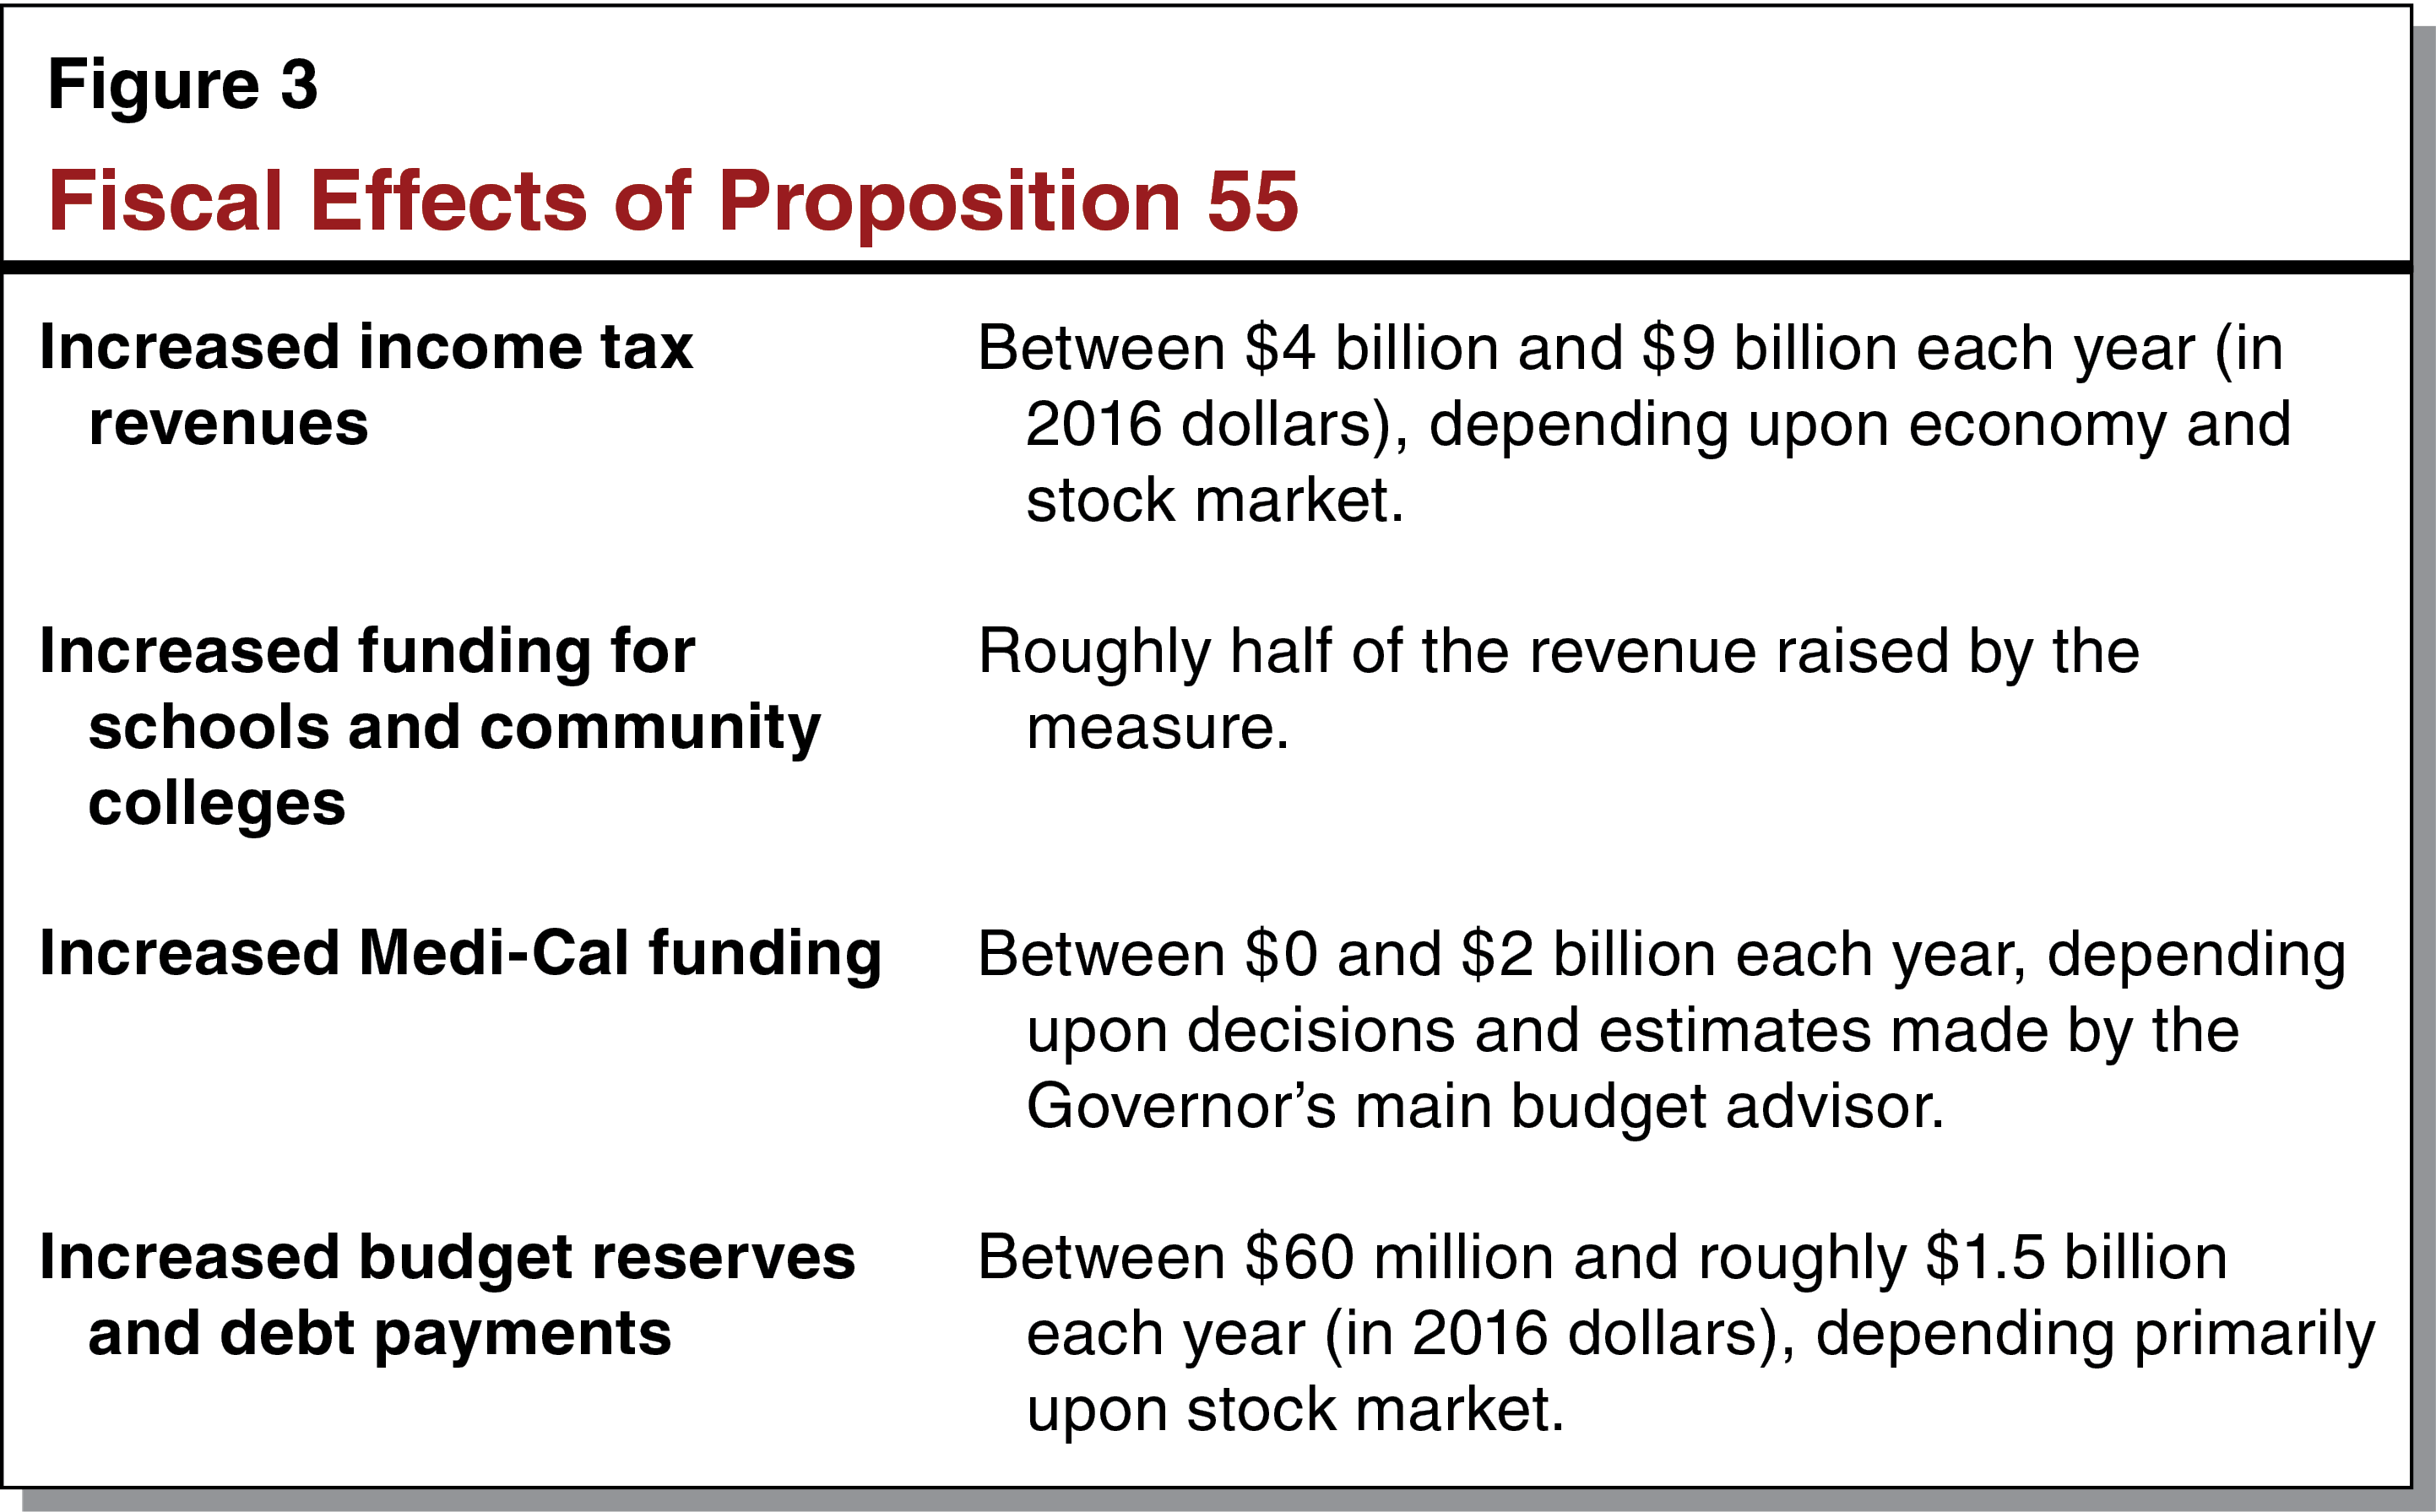 Figure 3 - Fiscal Effects of Proposition 55